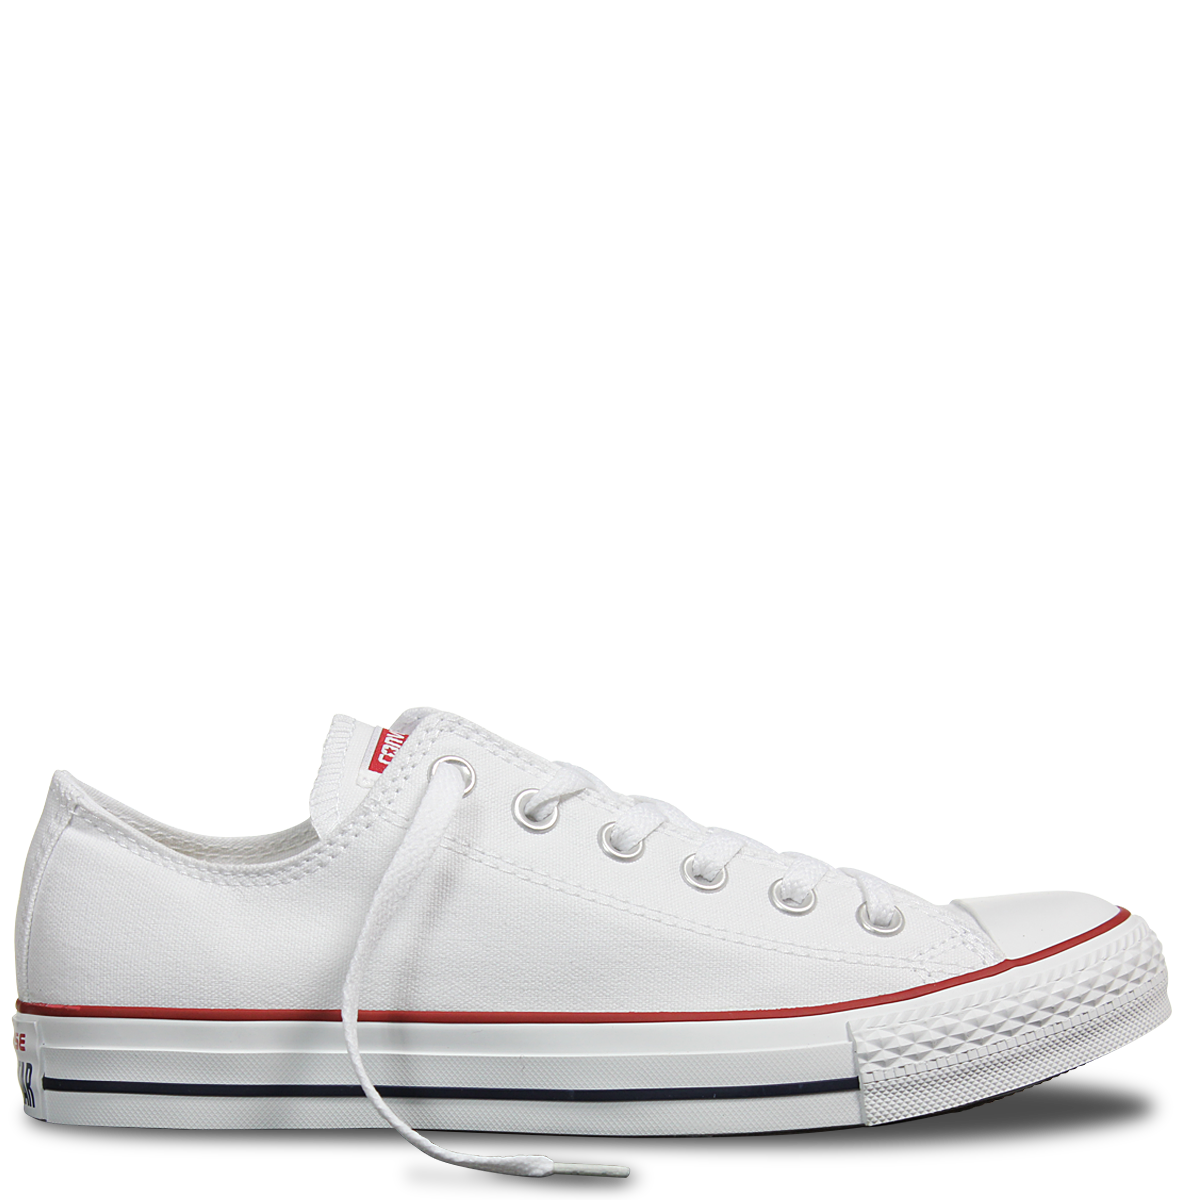 Low Top Converse Chuck Taylor Adult Shoe - Classic White – Bump Shoes 56763ee4d0c0